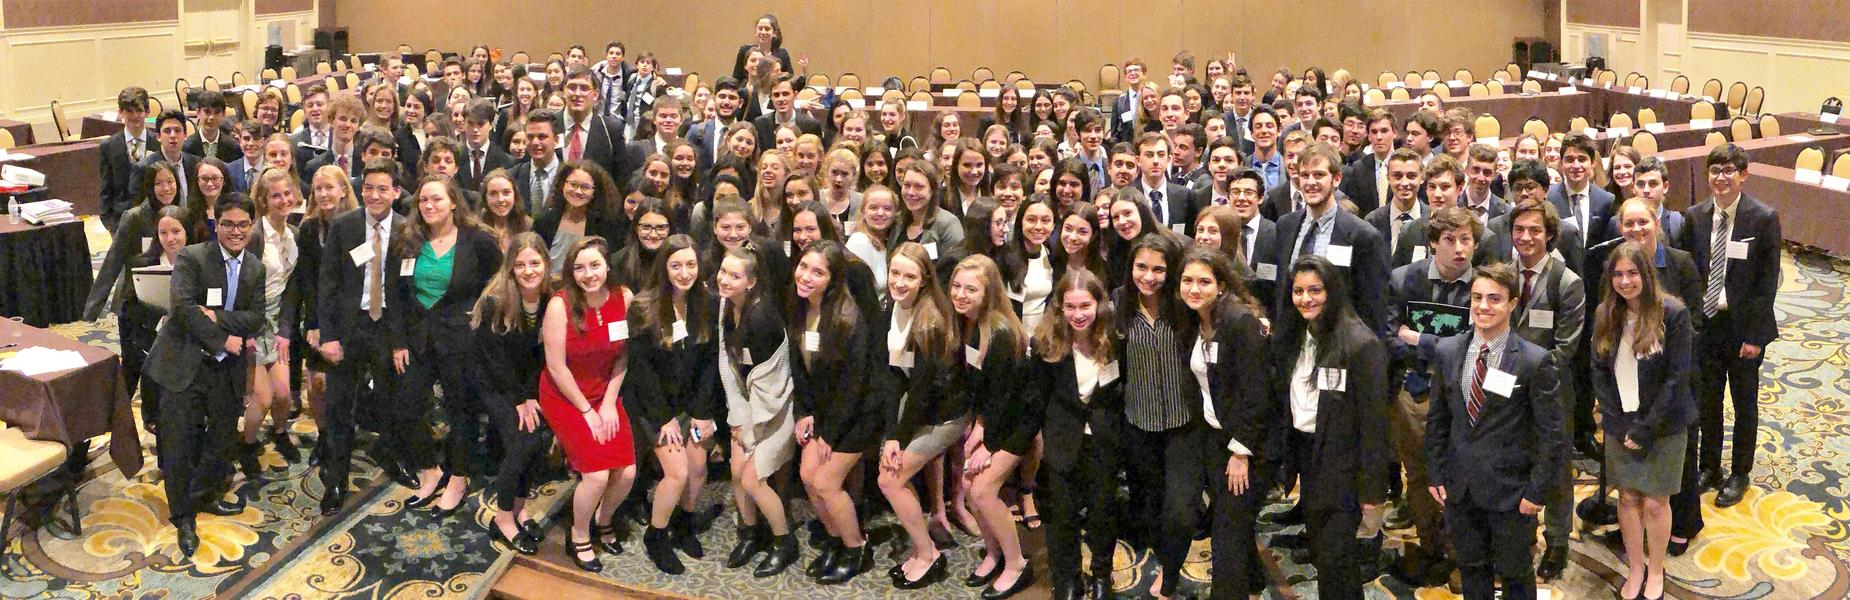 Westfield High School's Model United Nations Club won the Outstanding Delegation Award for excelling in all parts of the annual conference held in Hershey, PA on January 4-6, 2019.  Pictured here are all members of the Model UN Club who attended the conference.